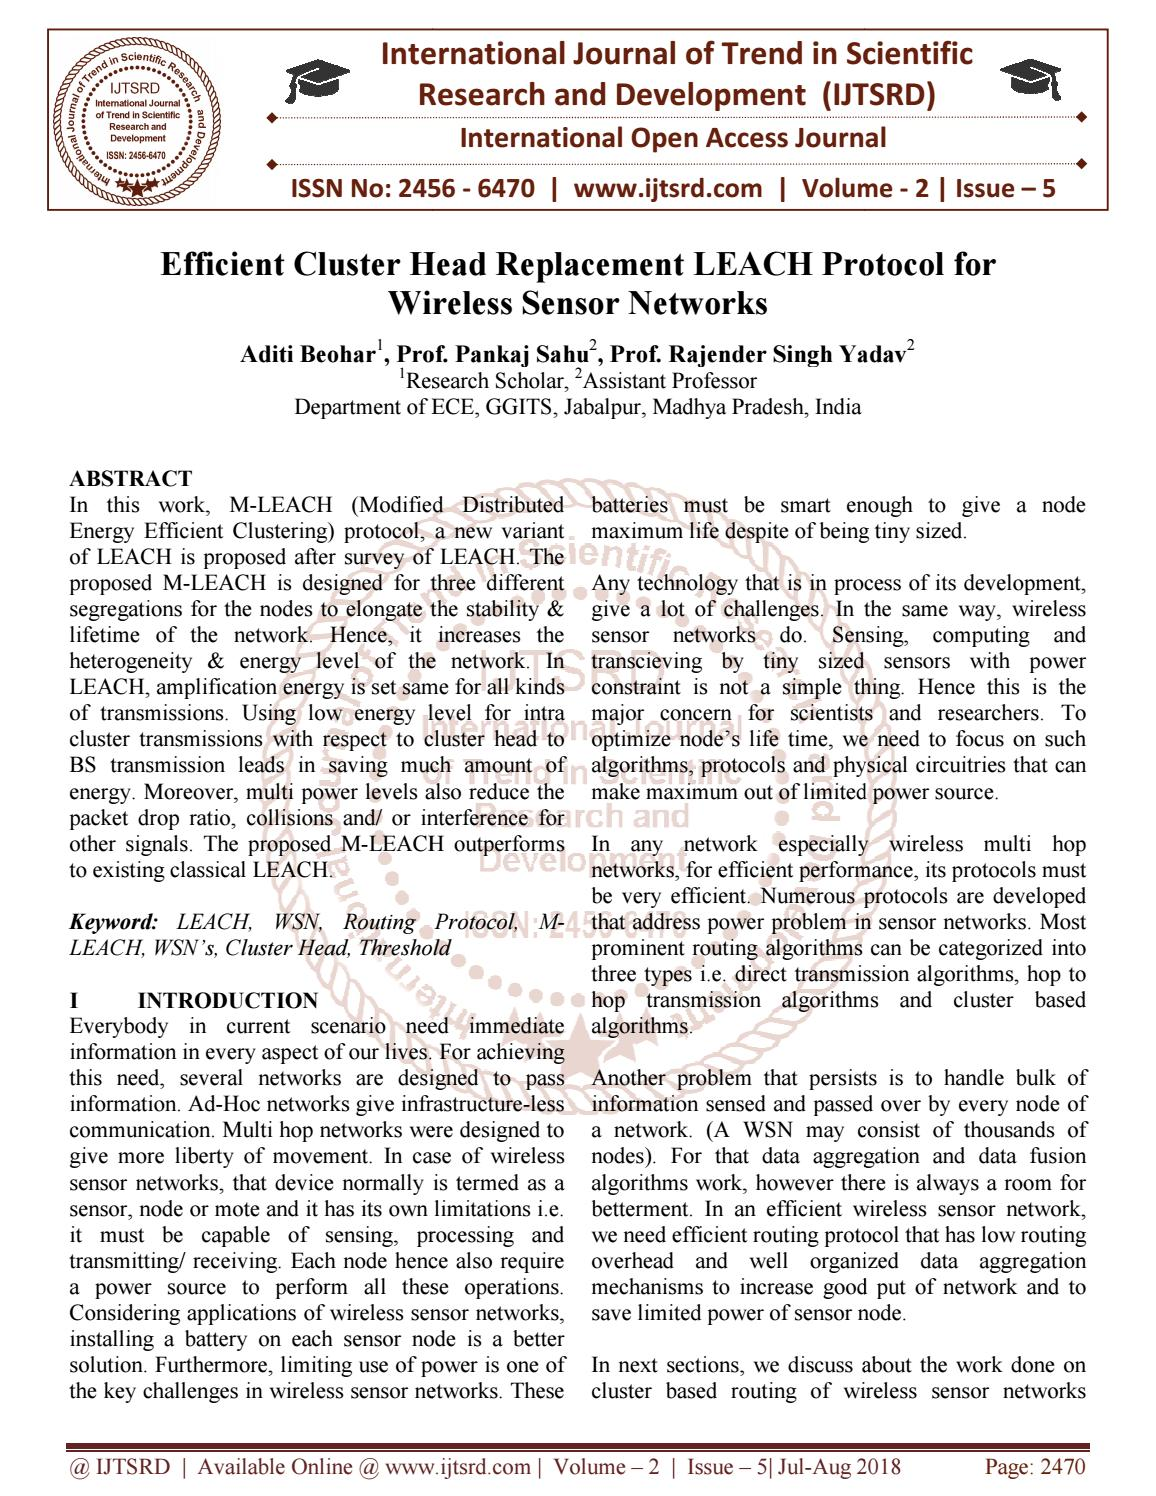 Efficient Cluster Head Replacement LEACH Protocol for